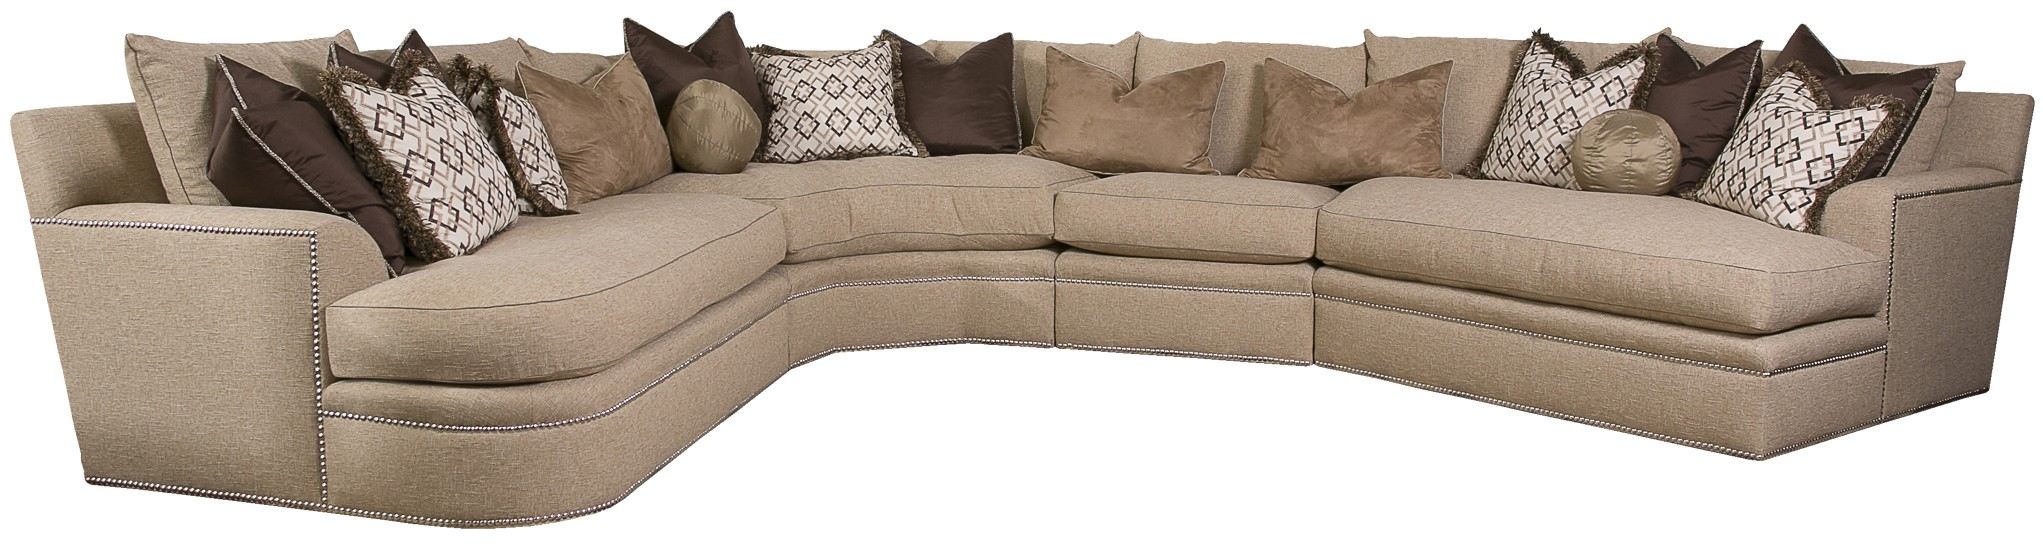 Beige Sectional With Nailhead Trim And Coordination Accent Pillows ~ Nailhead Trim Sectional Sofa